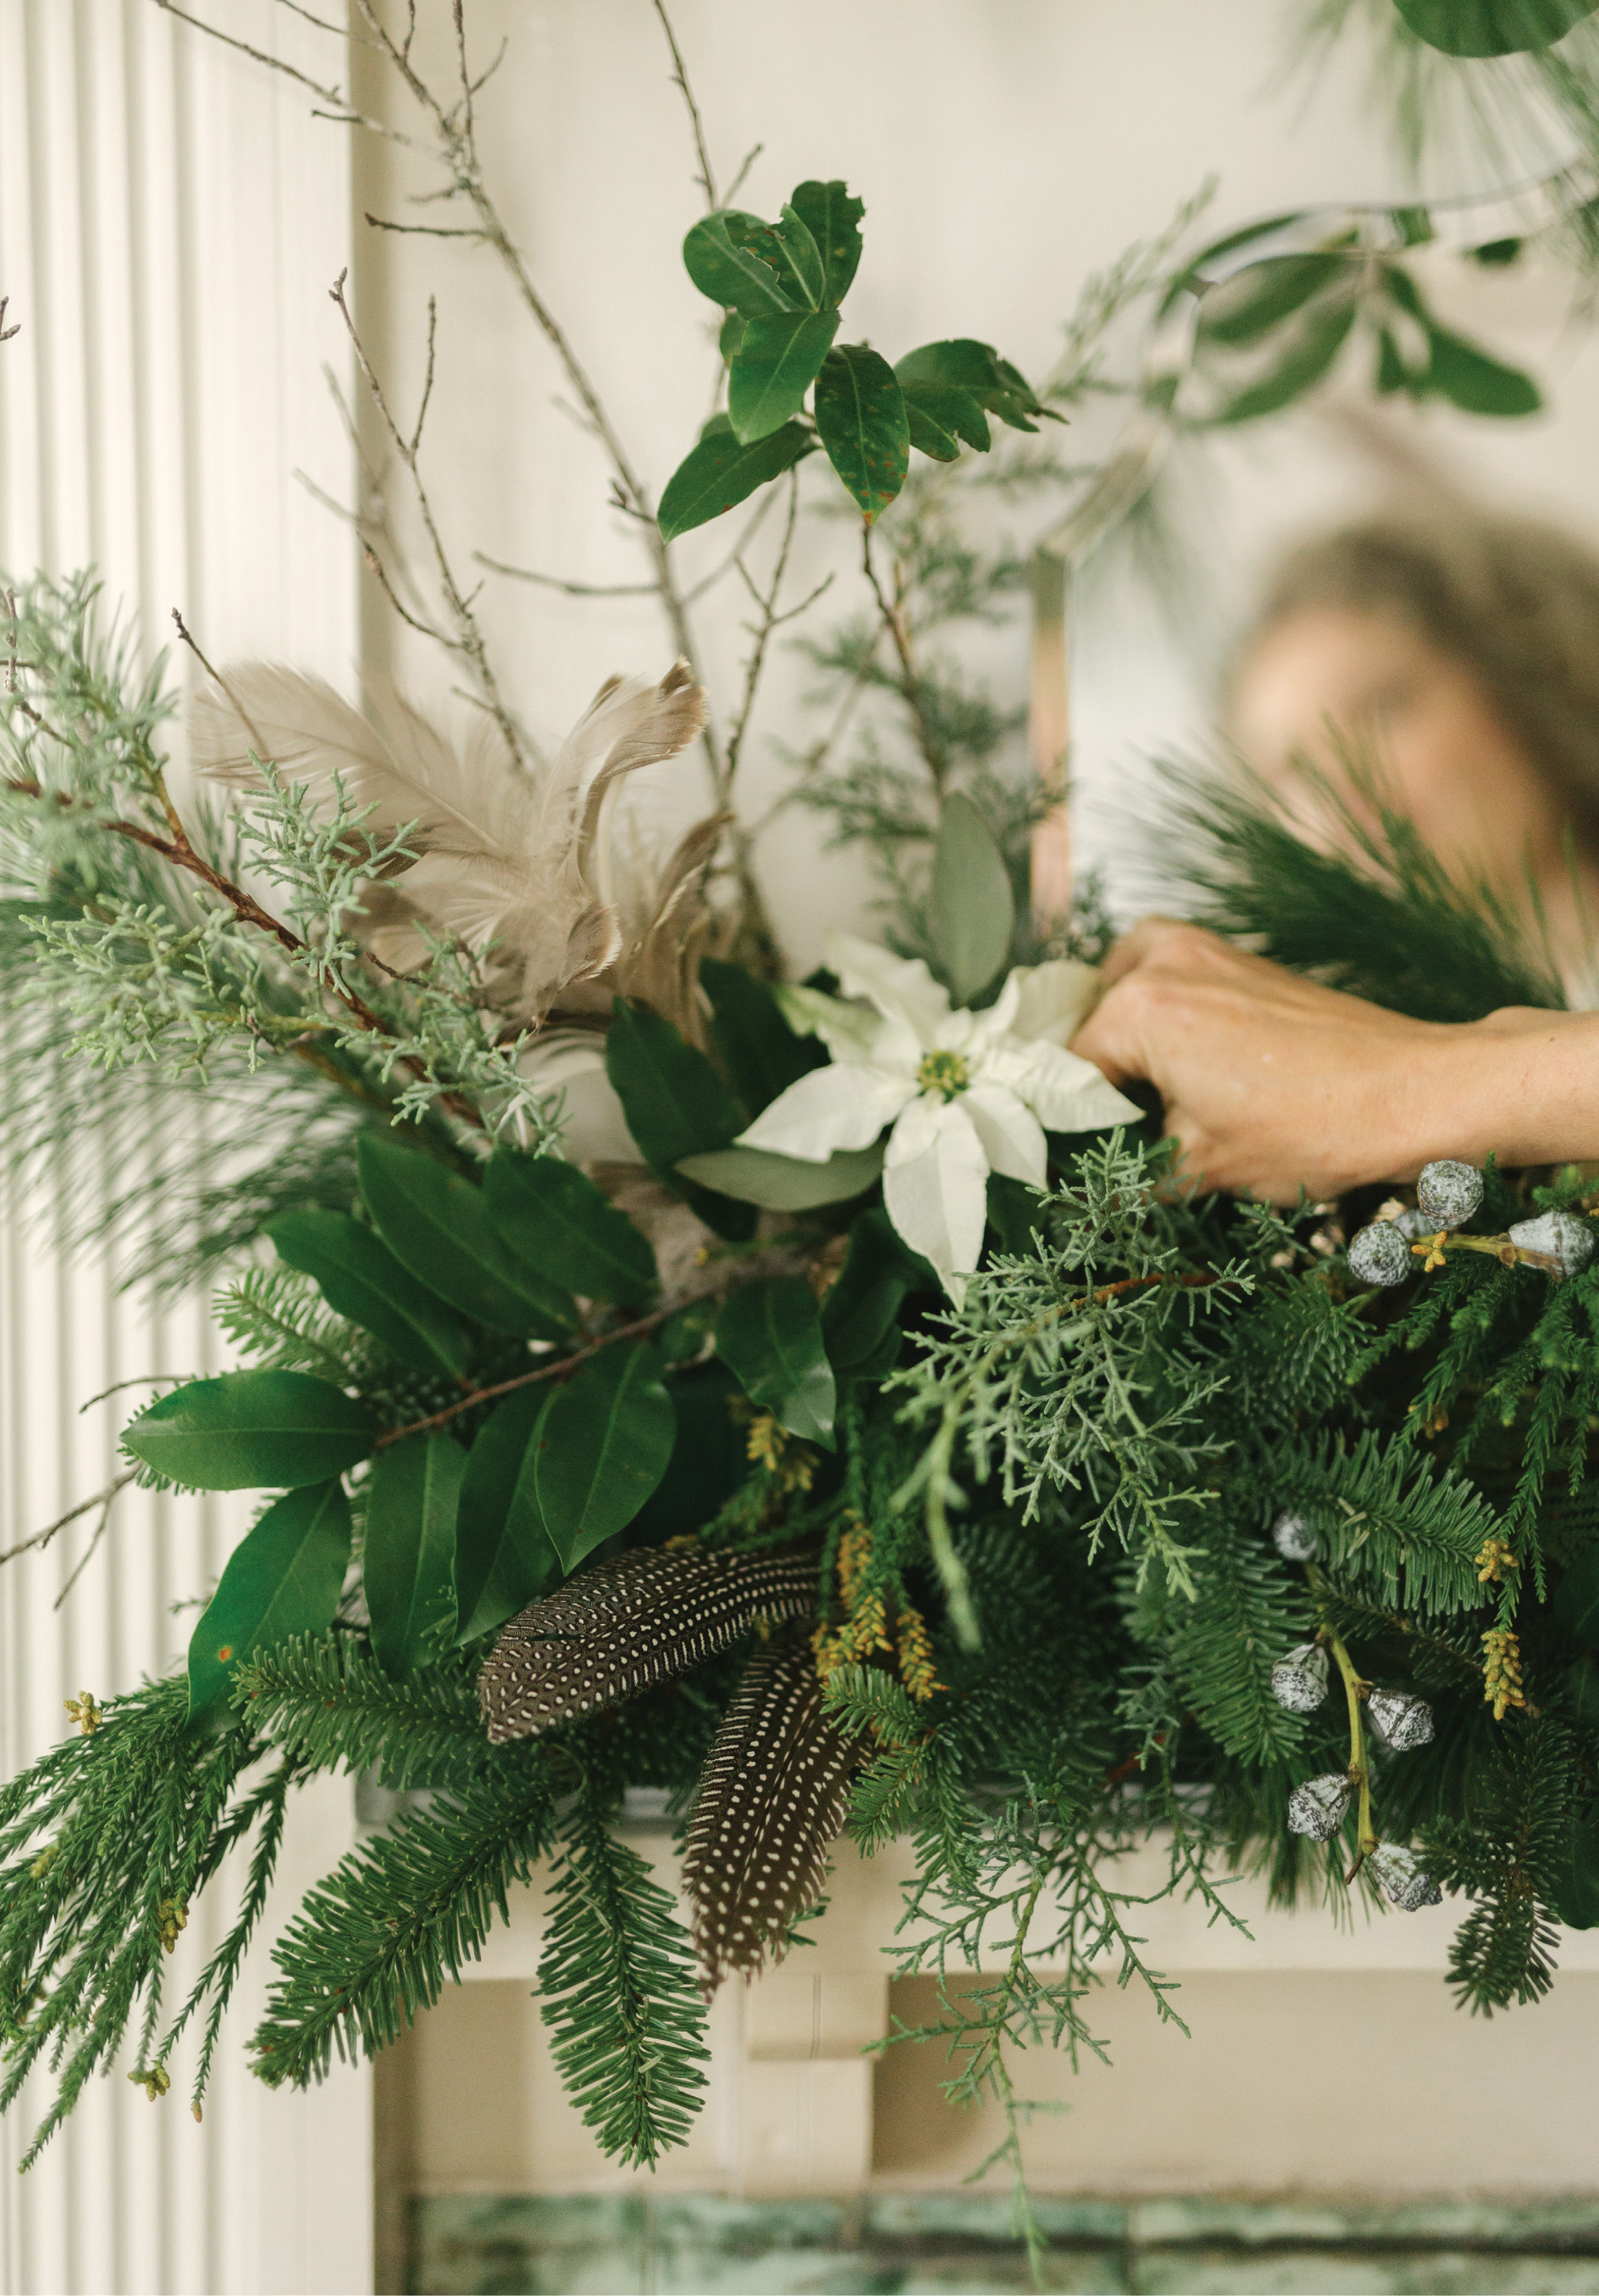 For her dramatic mantelpiece, she fills narrow Lucite trays with floral foam, then a mix of greens plus branches covered in lichen, silver-hued Cecropia leaves, and guinea hen feathers for tons of texture and a woodsy feel.